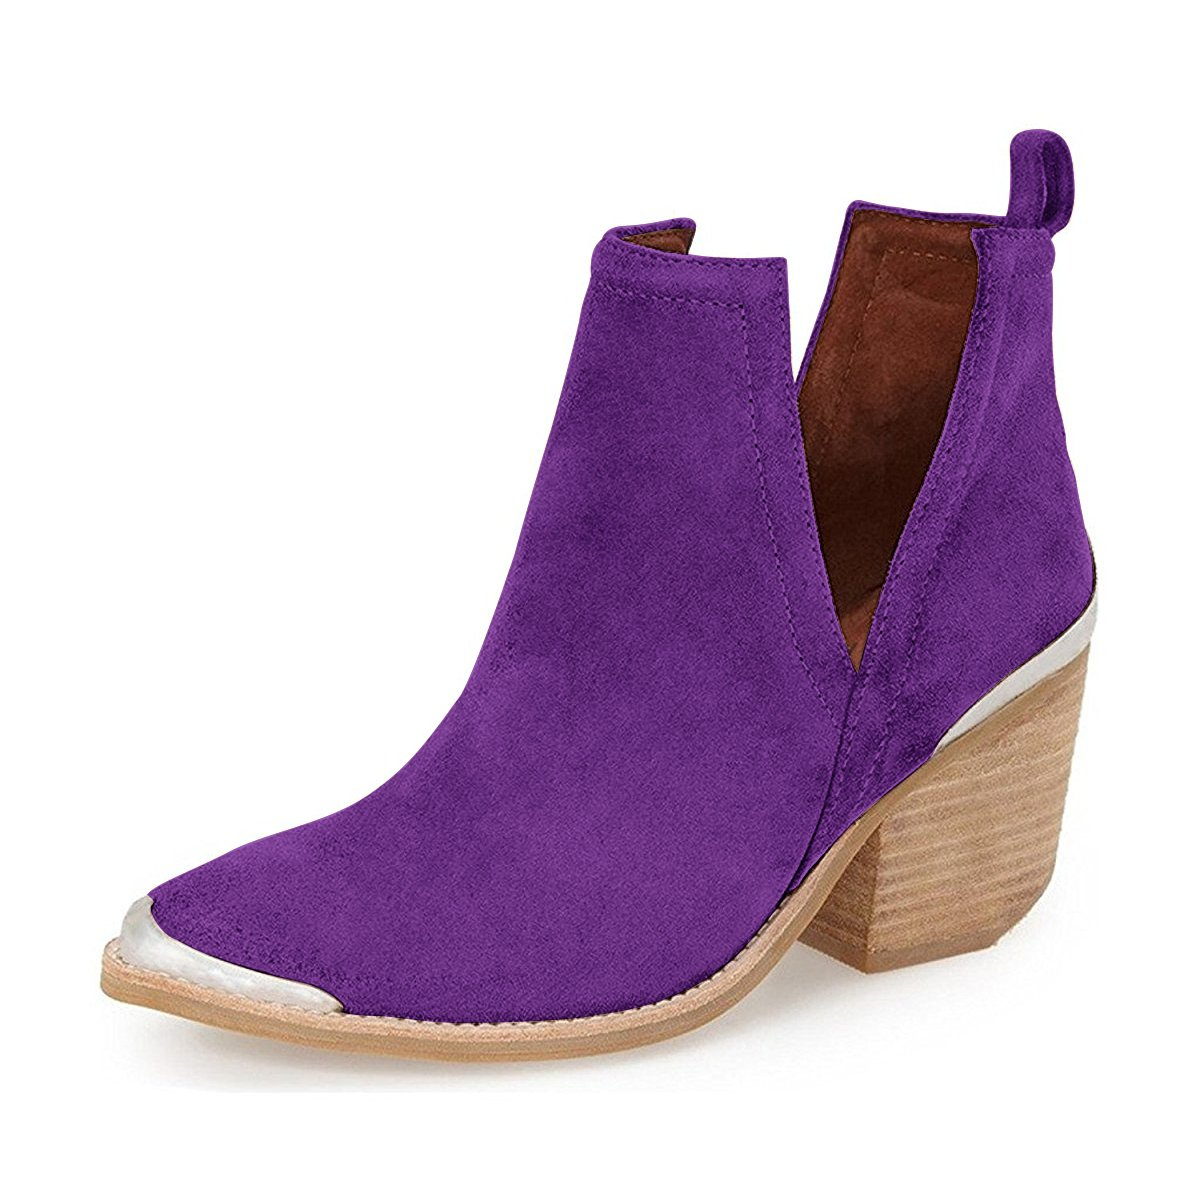 YDN Women Ankle Booties Low Heel Faux Suede Stacked Boots Cut Out Shoes with Metal Toe B01N3K2UZW 6 M US|Purple